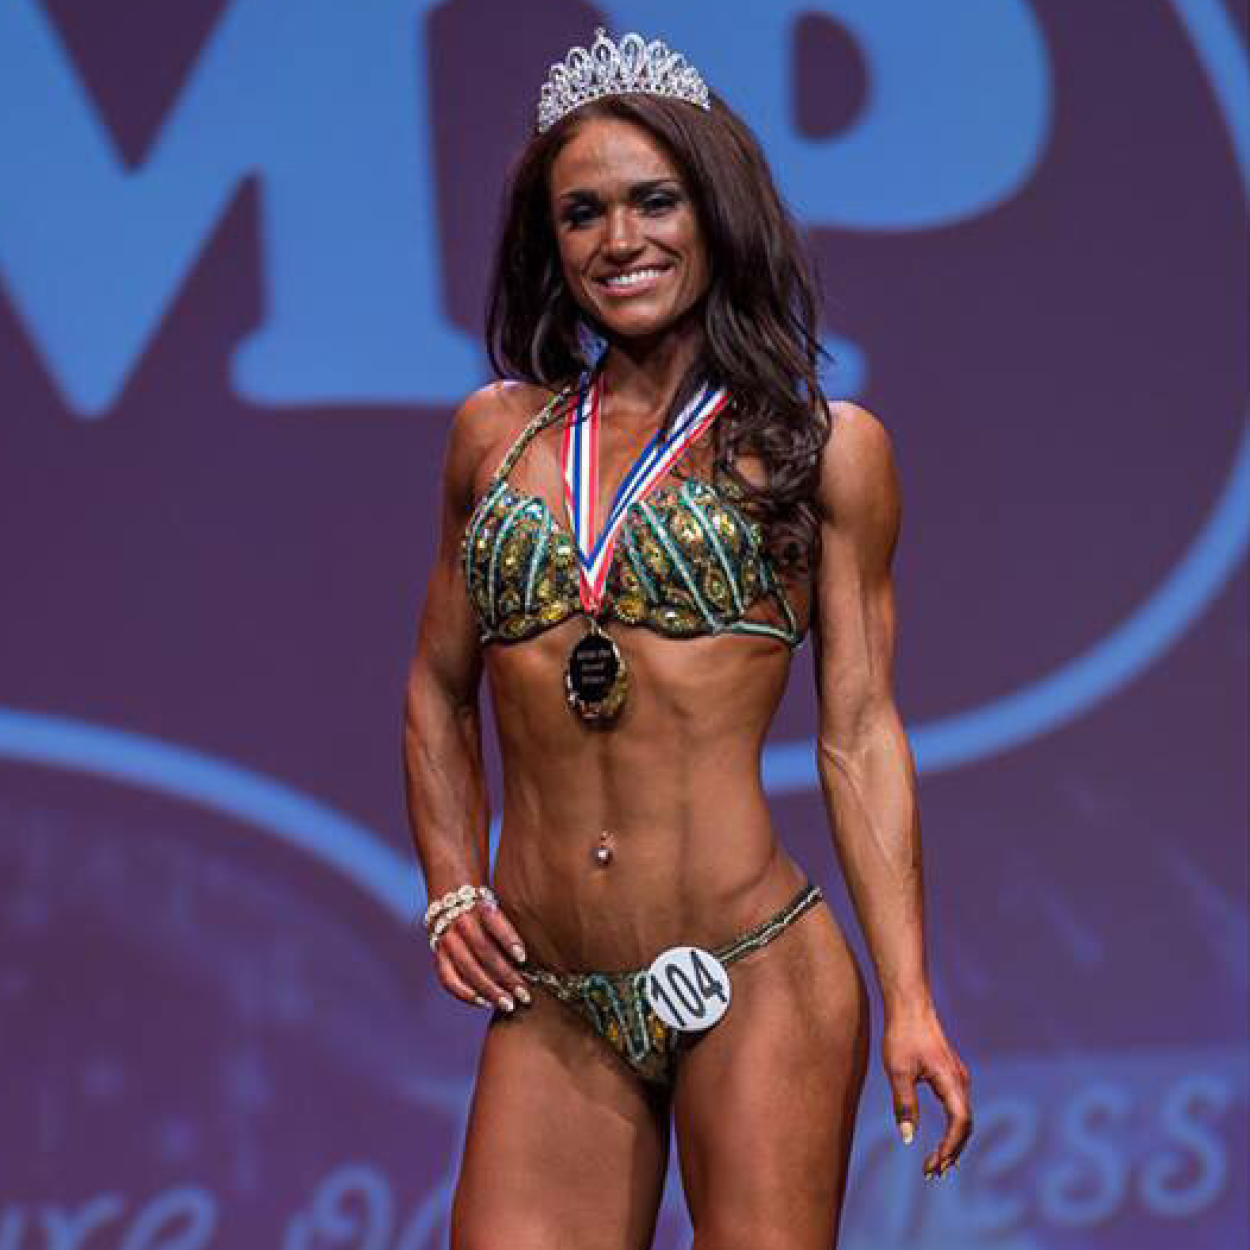 """MEISHA PIGGOTT   """"Having been in the fitness industry myself for more than 7 years, I have always been tempted to compete. Even with the knowledge I already had, I knew I couldn't do it alone. Cue Adam.  With experience and a career I aspire to and generally just an all round nice guy, I knew Adam would be the coach to help me achieve my goal. His knowledge relating to nutrition, supplementation and training is incredible and he easily applied it to me as an individual, considering my attitude, lifestyle and requirements. As I know he will agree, I am somewhat a perfectionist and like to ensure that I do everything by the book. Regardless of my endless questions and need for reassurance, Adam continued to pick me up and push me further than I ever thought was possible. Even managing to convince me to train less and relax more – unheard of in my world.  Now, with my first competition done and 6 Miami Pro trophies under my belt, the 'boss' (as I call him) and I have big plans for me over the coming year, and I honestly, couldn't be more honoured and proud to be working with him on the next goal. I know, together, we'll achieve what I want to achieve. I trust him 100%. Whatever the boss says, I will do!"""""""